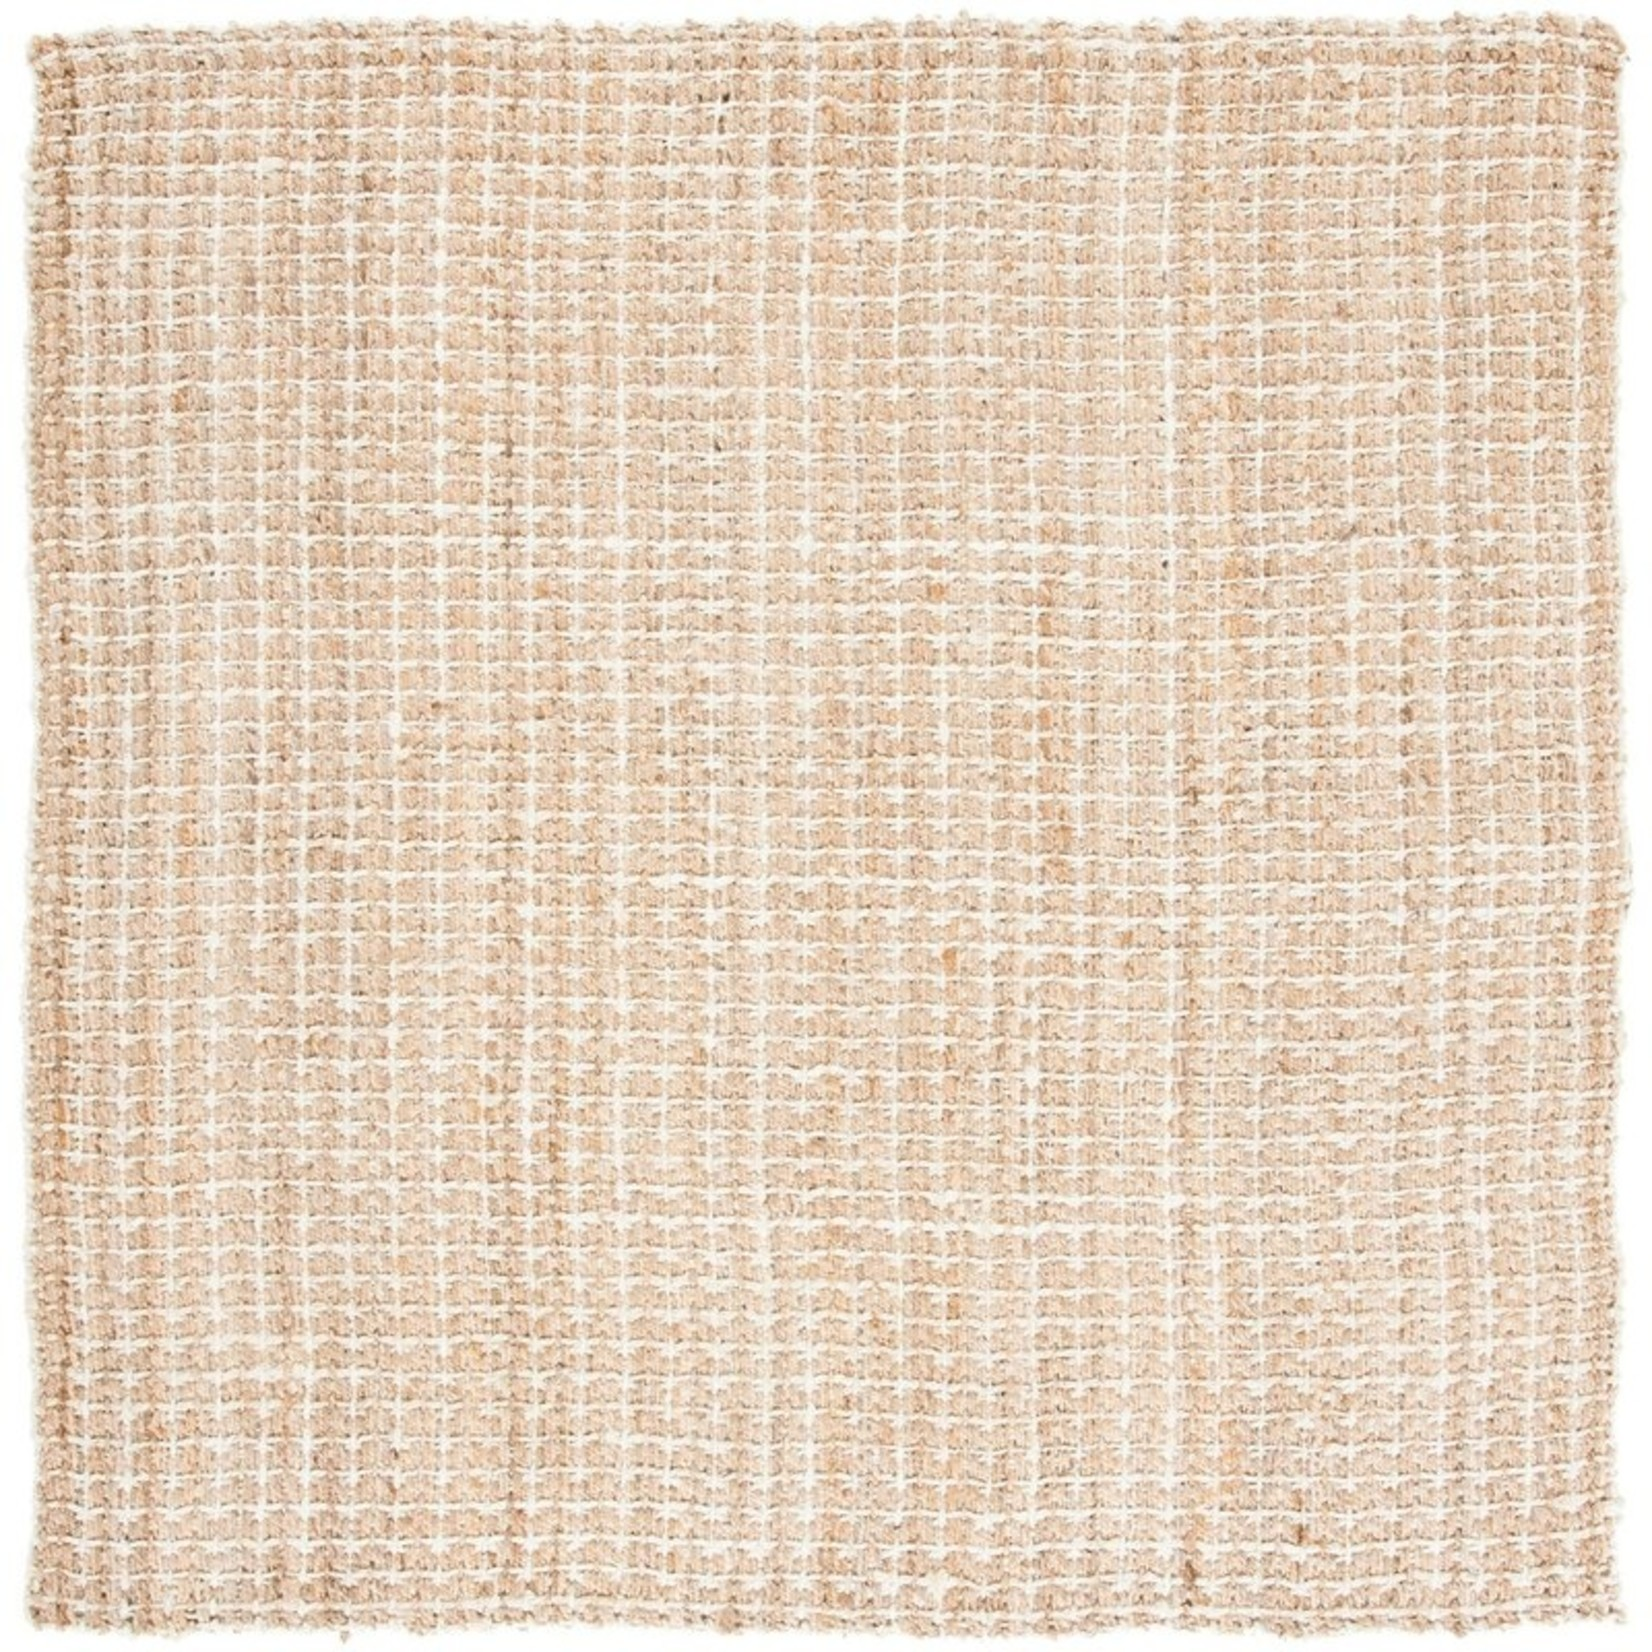 *7' x 7' Square - Cardoso Abstract Handmade Tufted Beige Area Rug - Dirt on Back